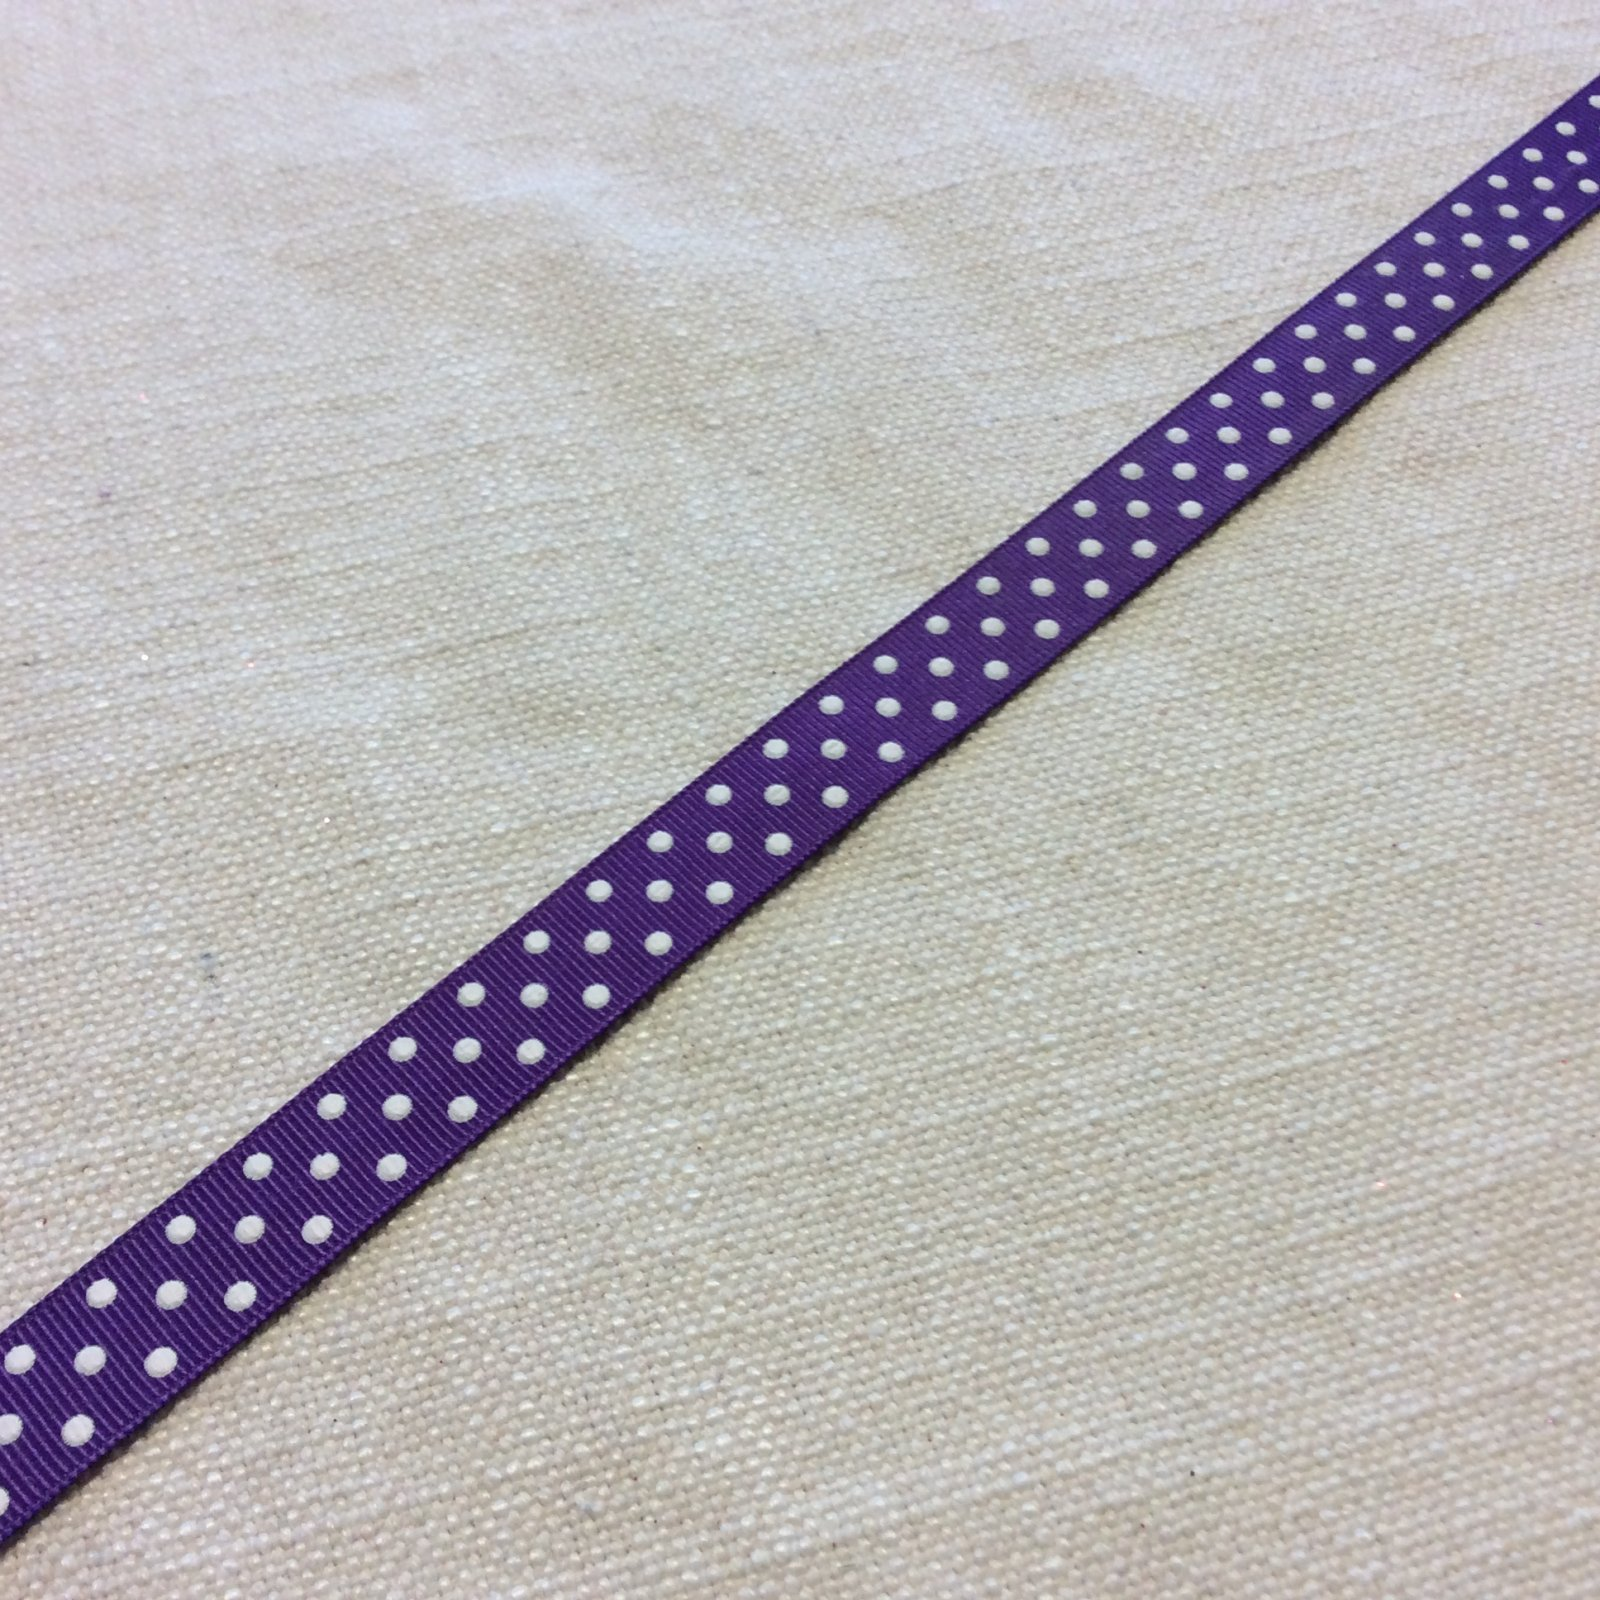 Grosgrain Ribbon 5/8 Printed Purple and White Polka Dot Trim Ribbon RIB1161